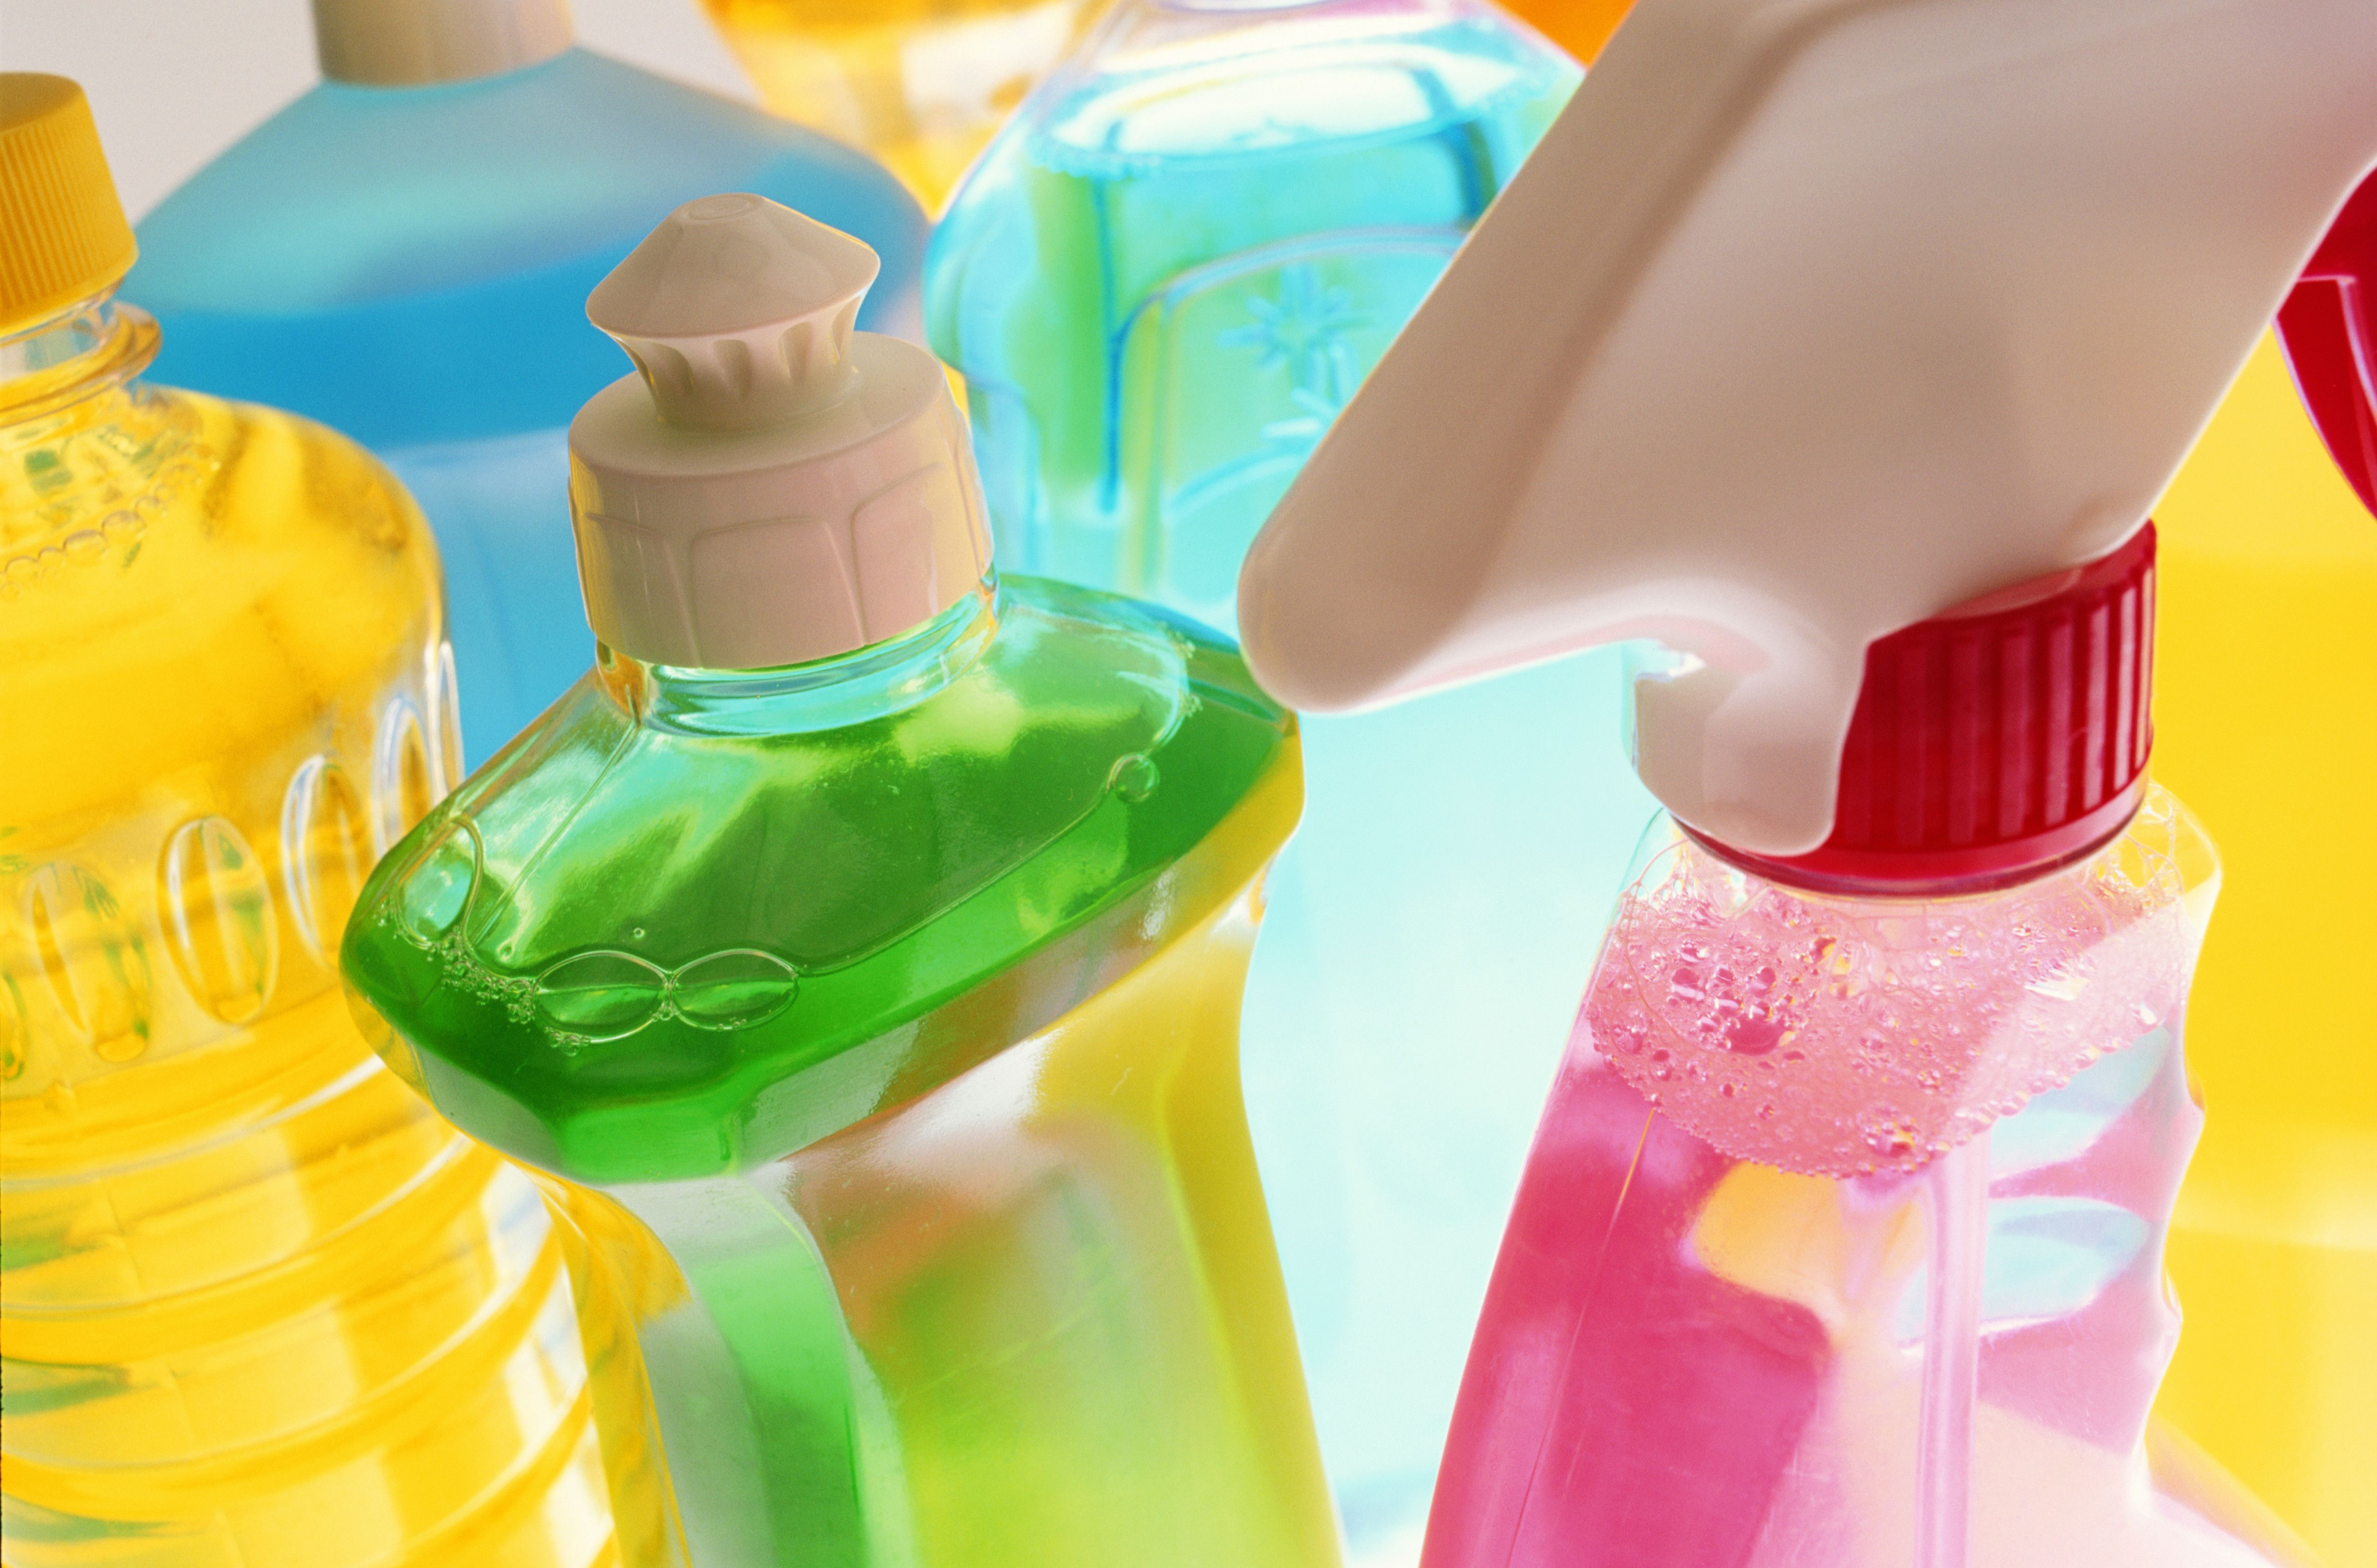 Best Septic Safe Household Cleaning Products